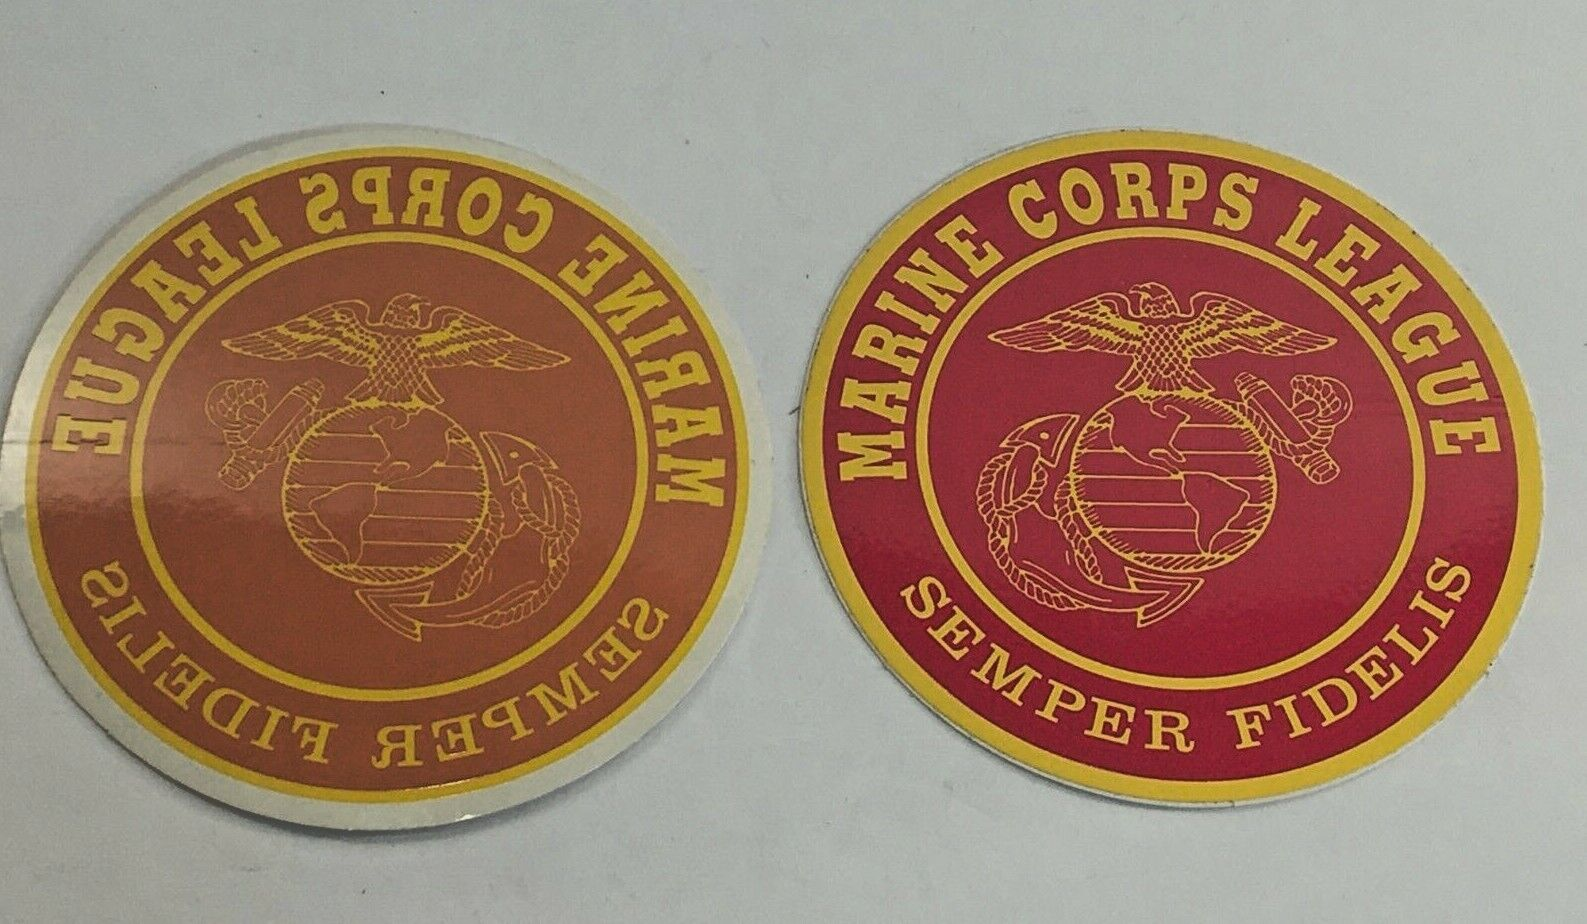 Marine Corps League Sticker Decal 4 Inch Round Gold Red Inside Outside Pair  - $5.95